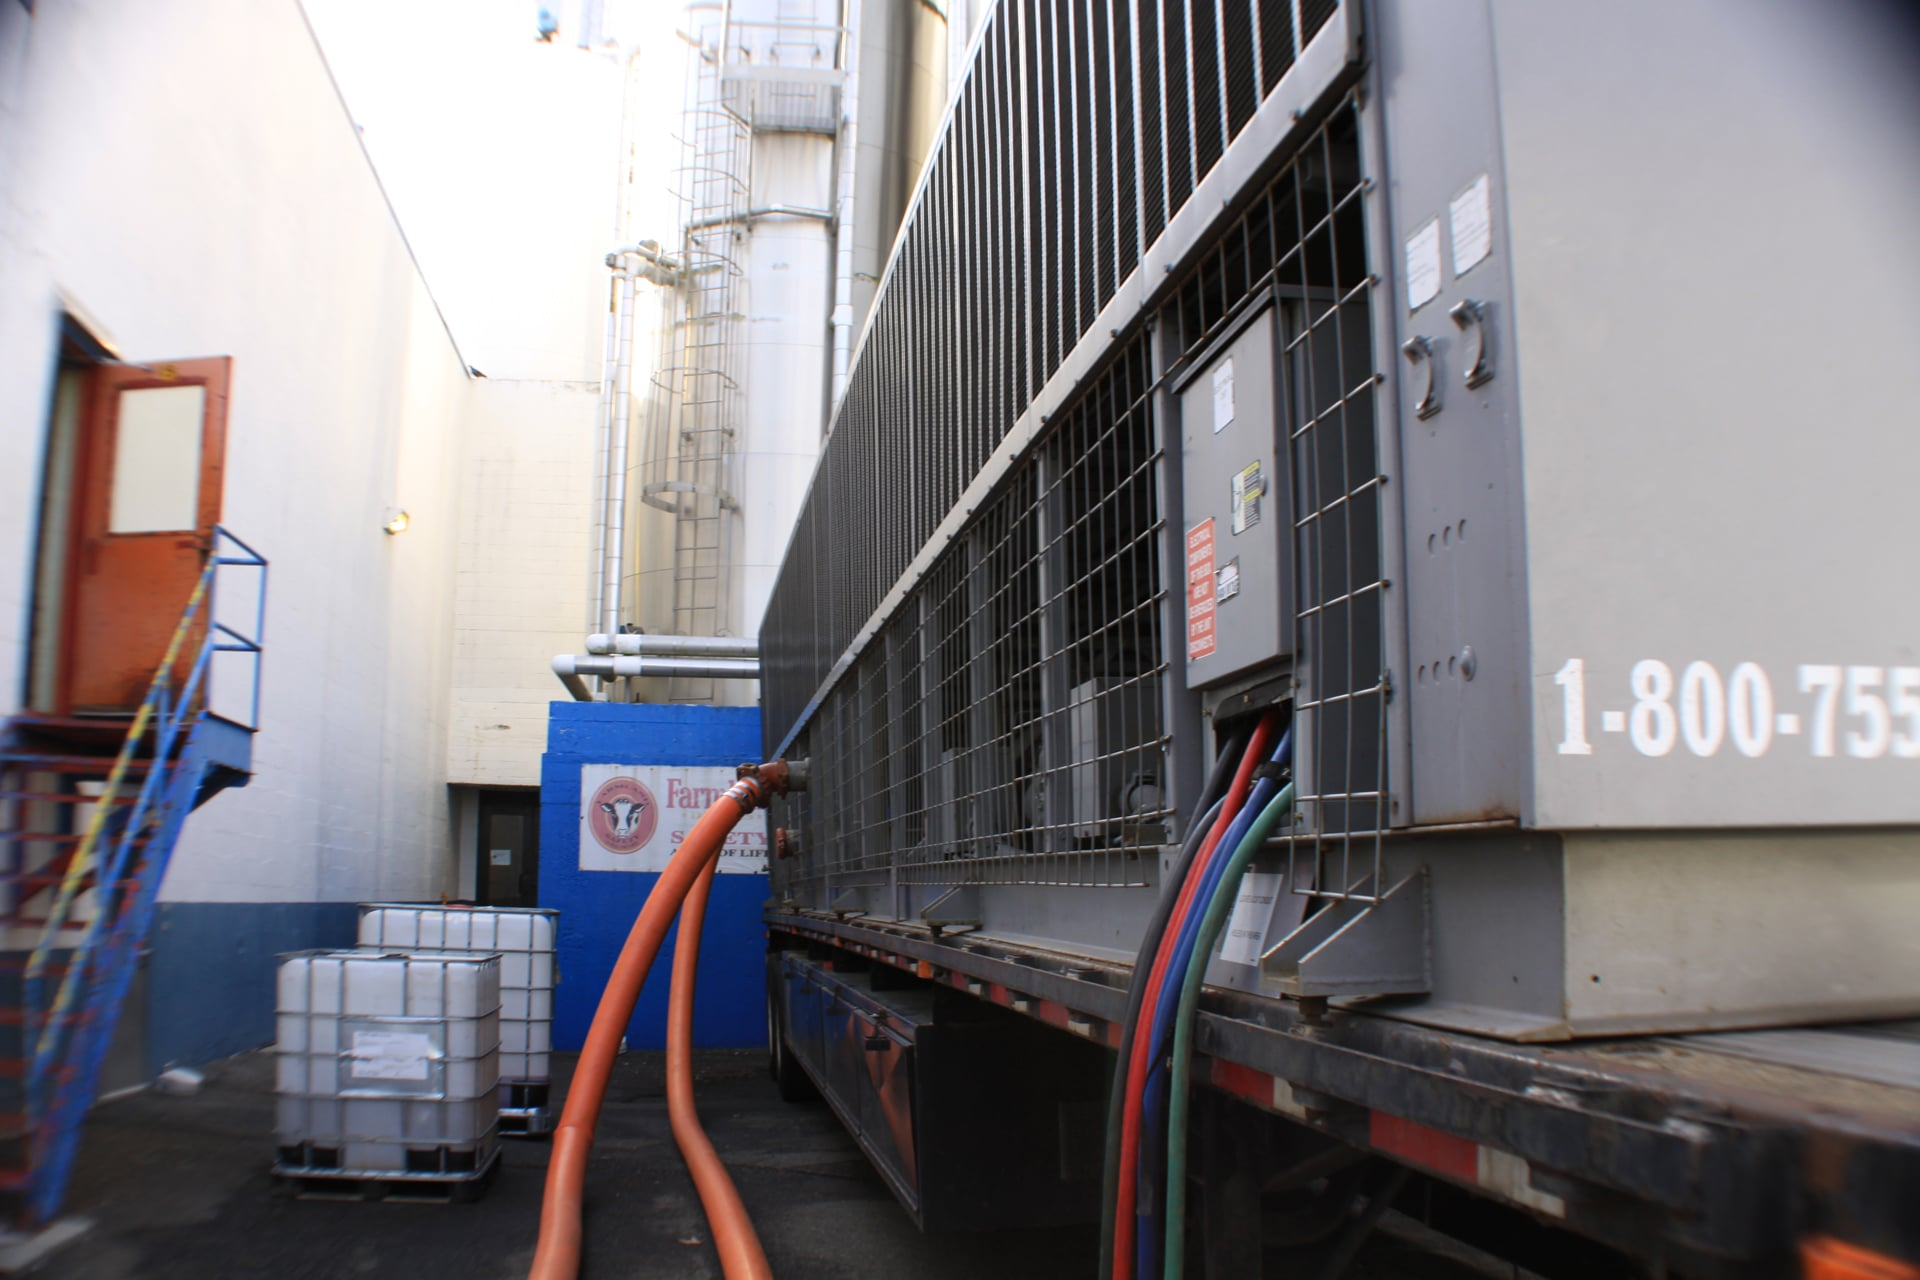 Temporary Chiller St Albans City VT, Air Cooled Chiller Rental St Albans City VT